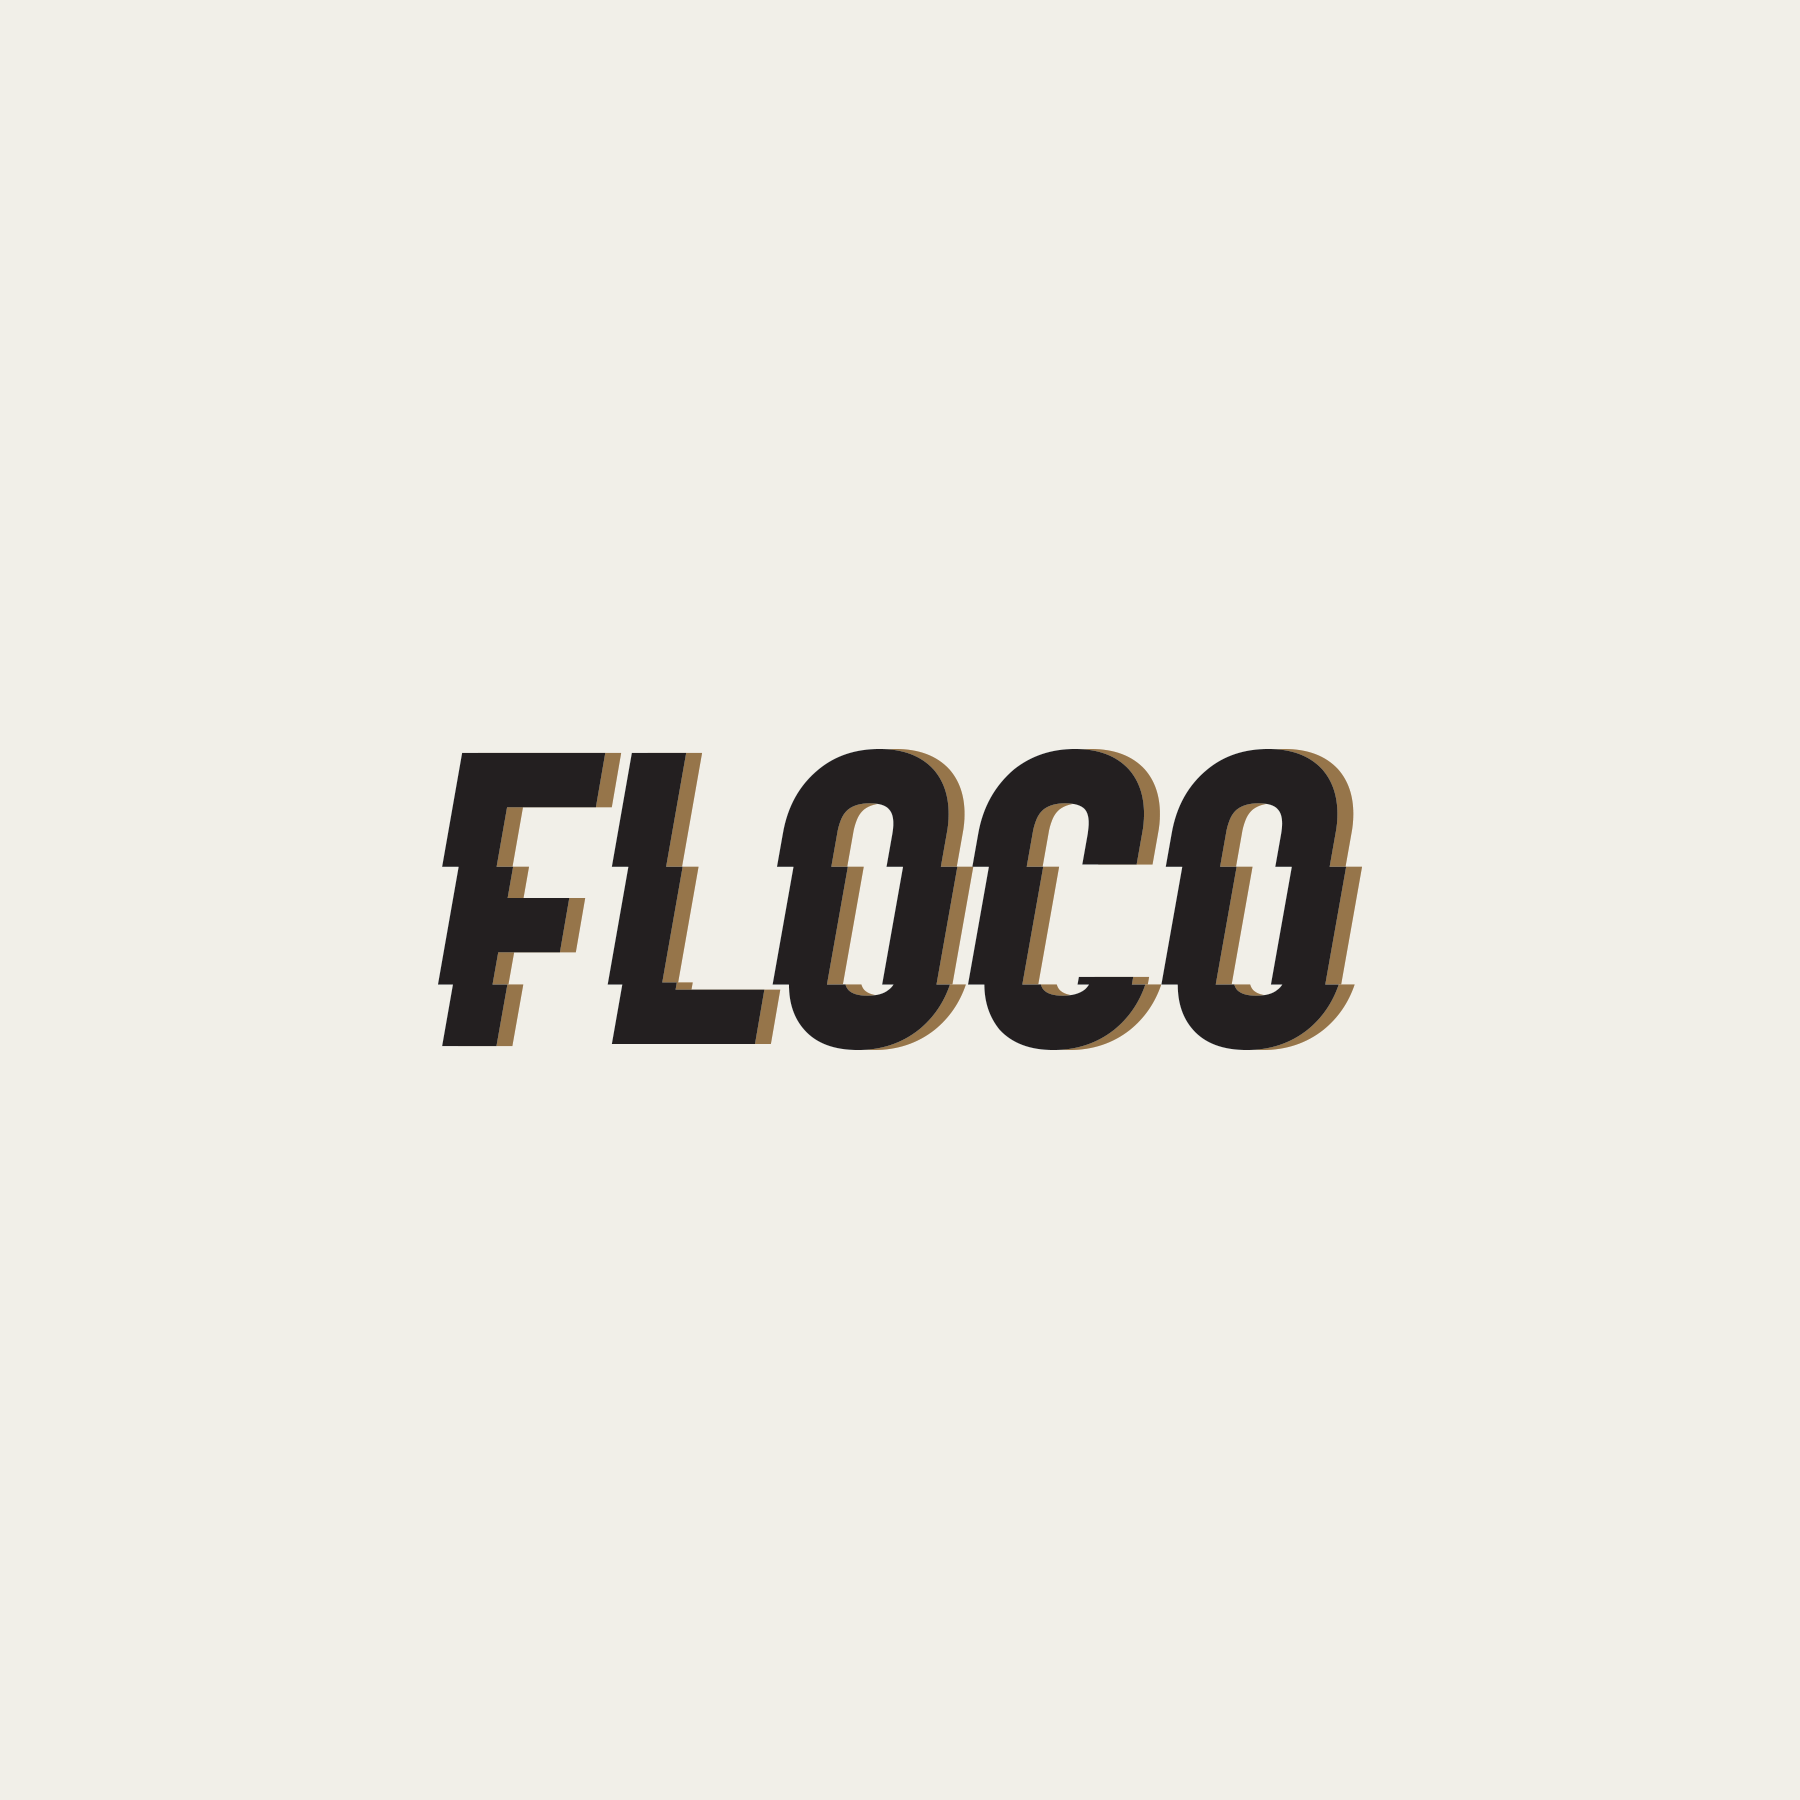 Staggered Edgy Typography Font Logo Flourish Collaborative Edgy Fonts Typography Fonts Typography